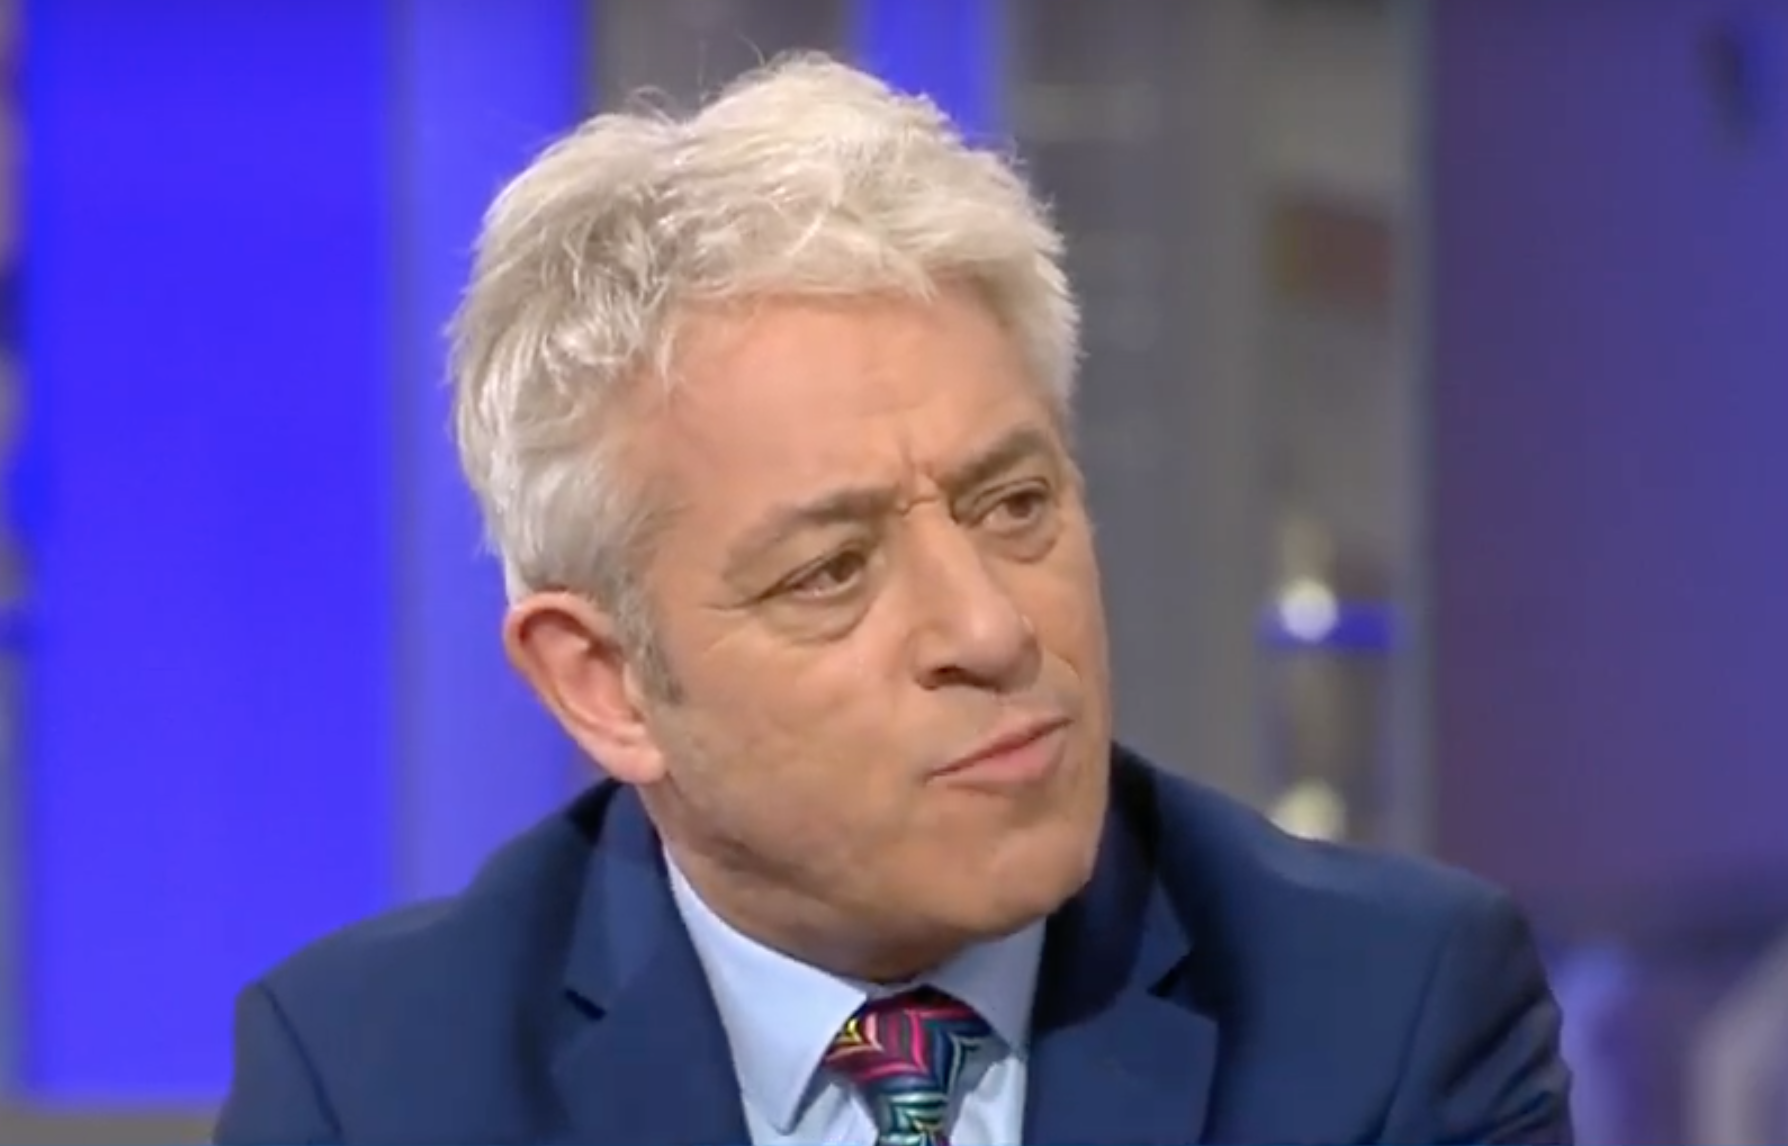 John Bercow could be blocked from peerage unless he joins Labour